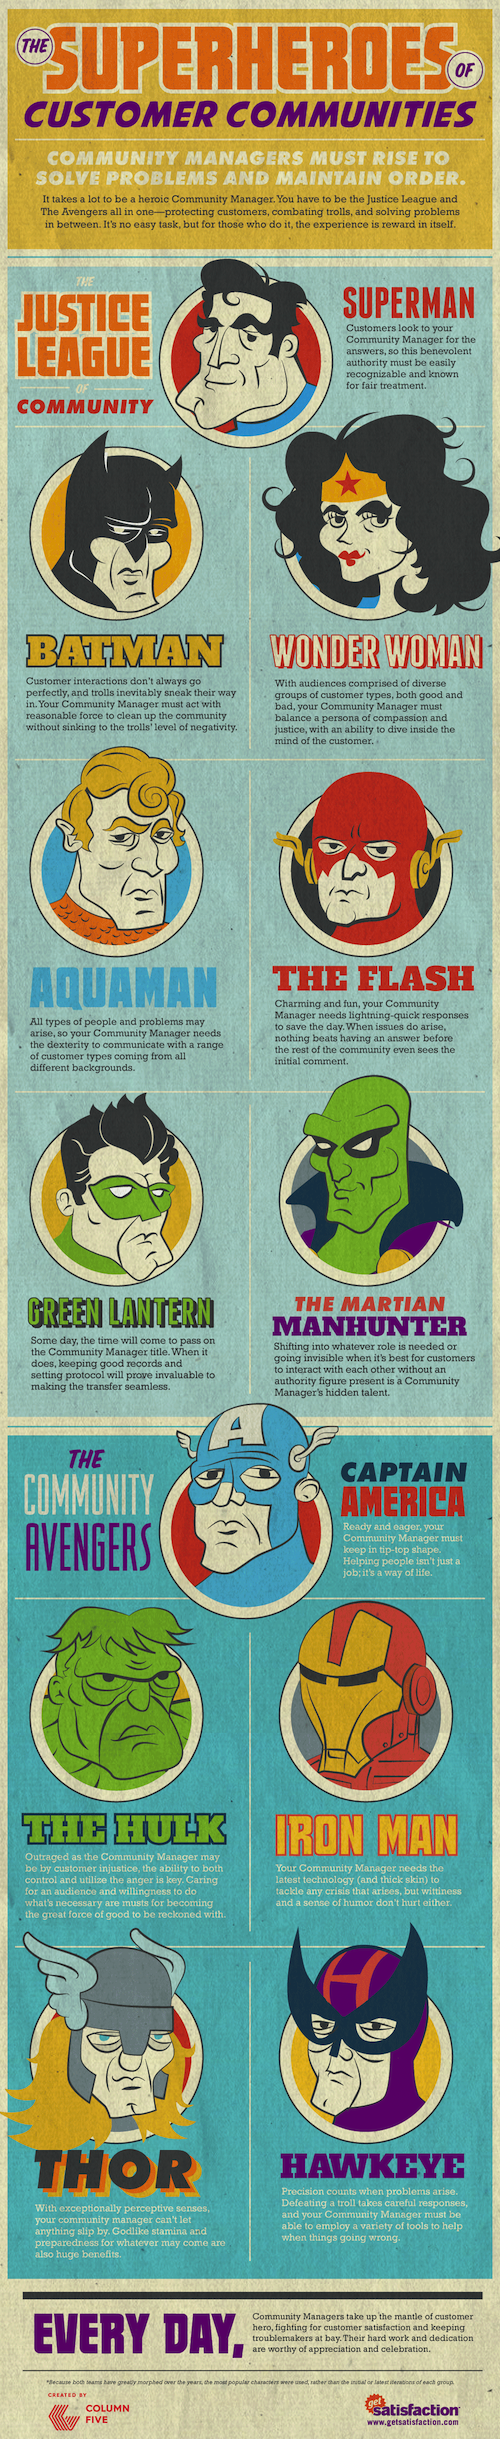 Infographic: The Superheroes of Customer Commnuities